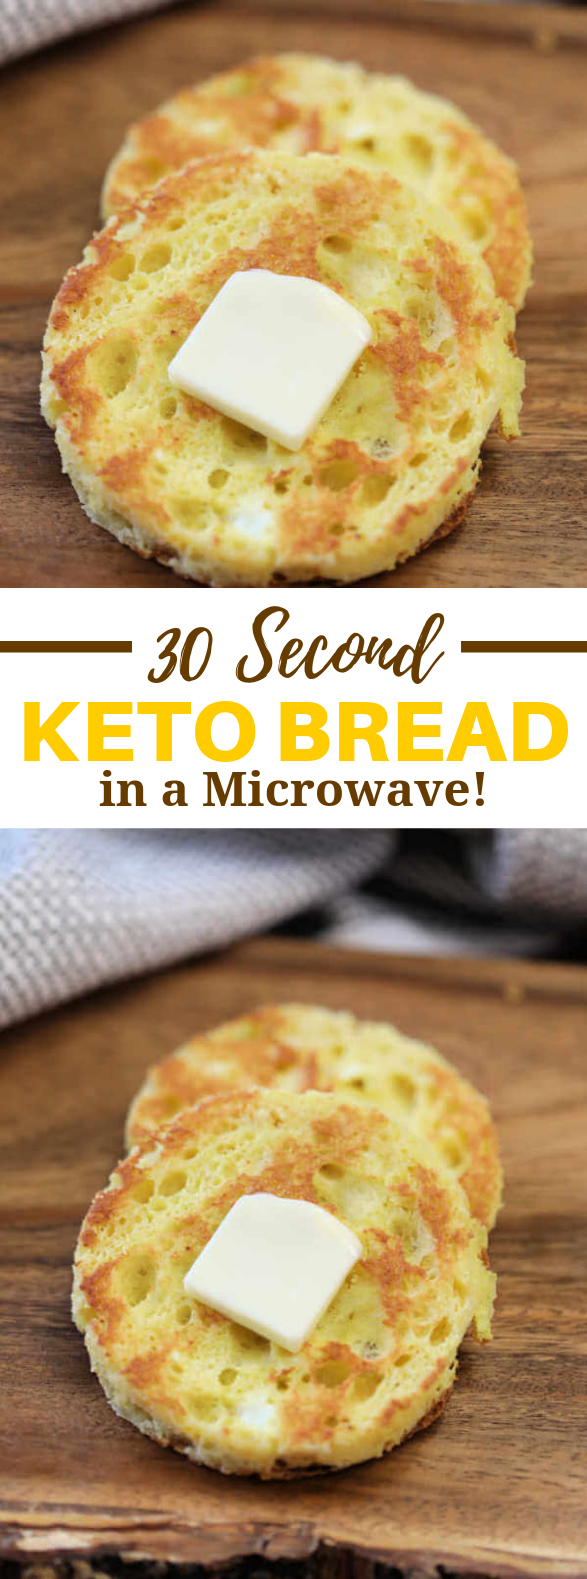 THE BEST 90 SECOND BREAD RECIPE #keto #lunch